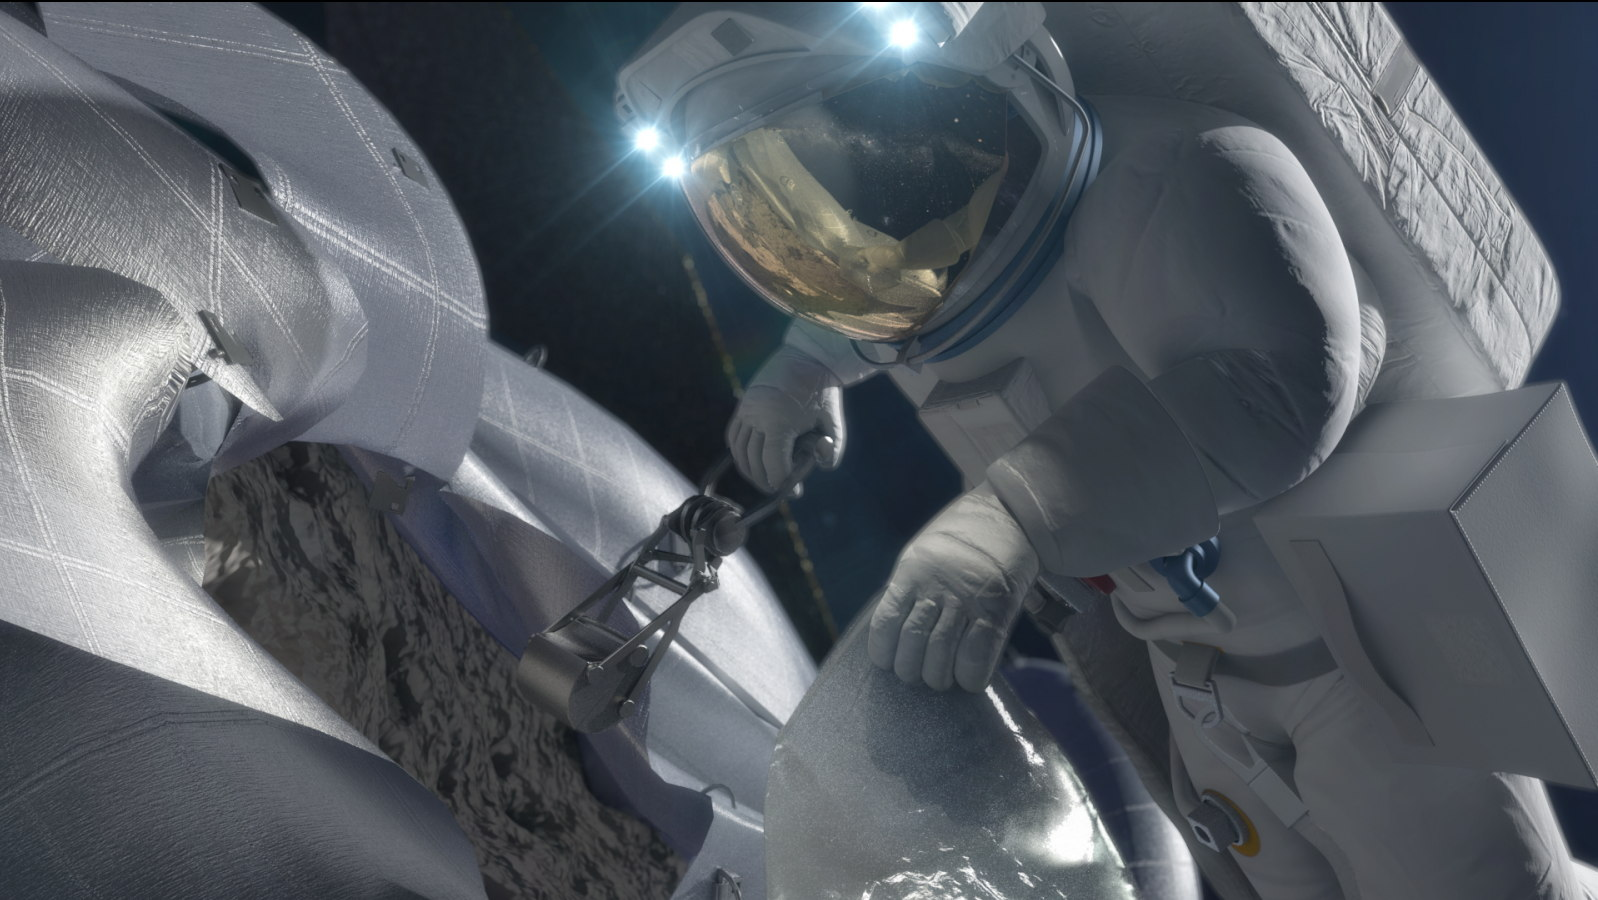 Asteroid-Capture Mission Will Bring Mars Within Reach, NASA Chief Says